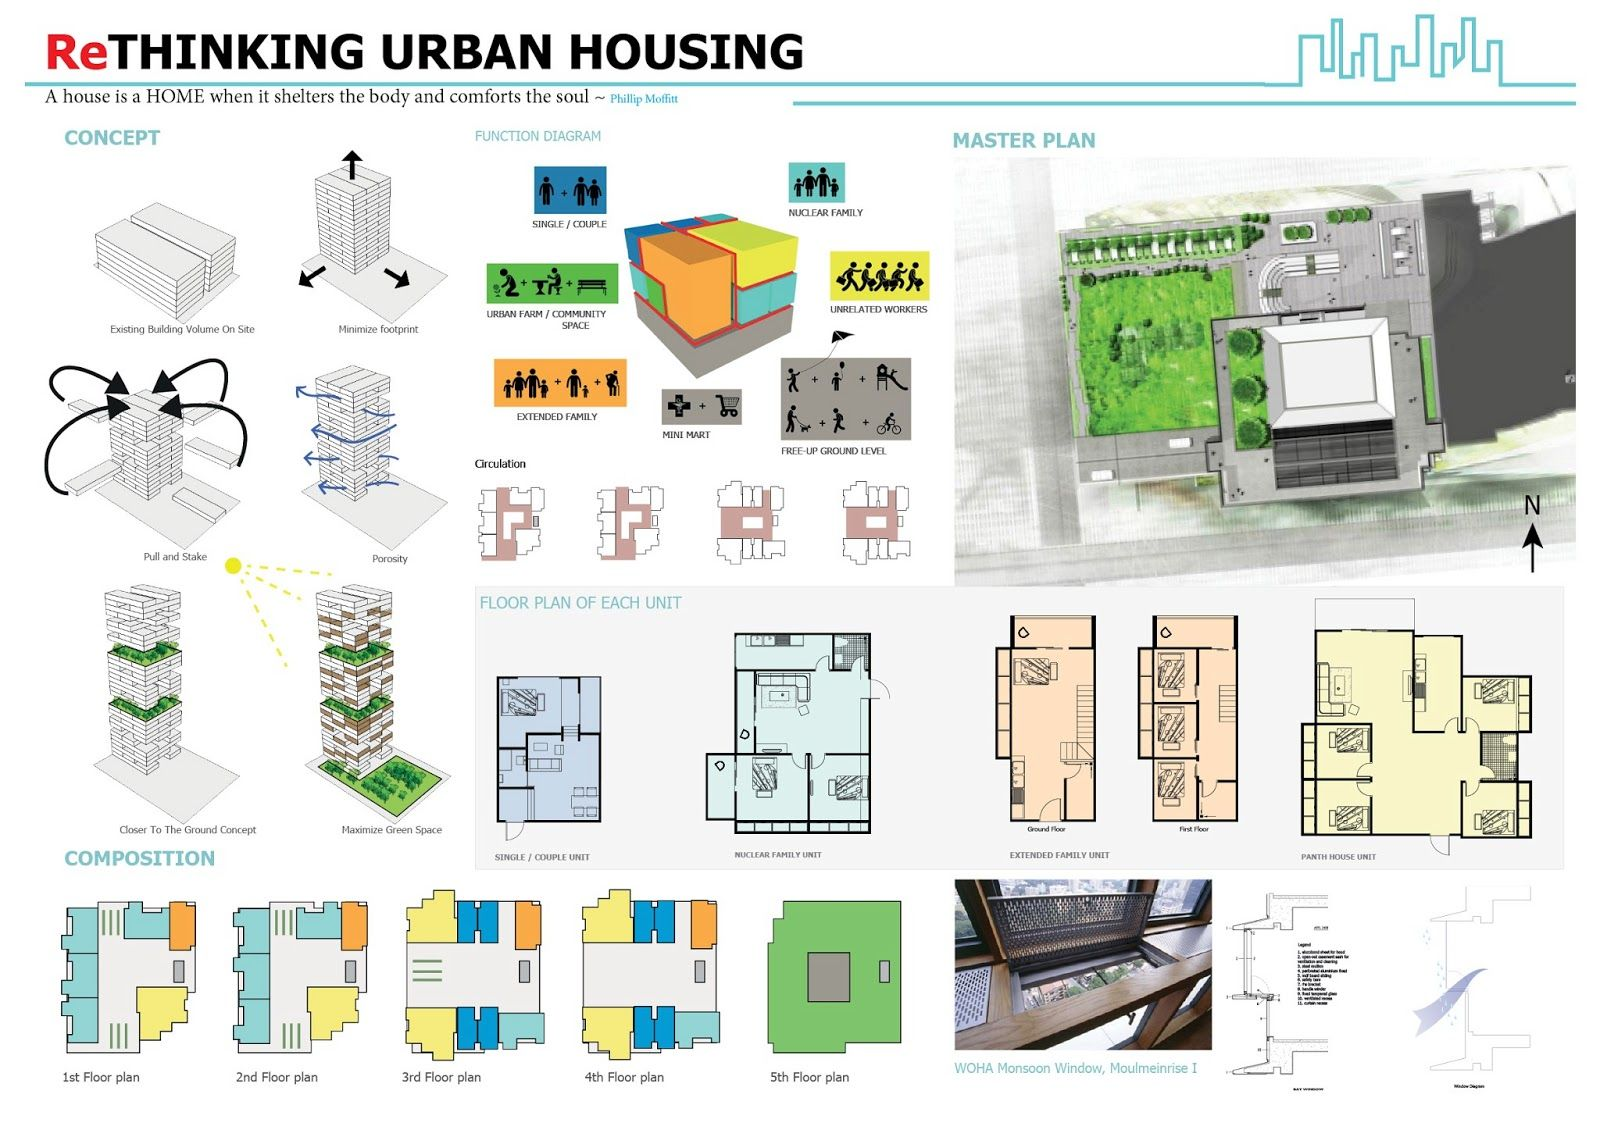 Concept design architecture house rethinking urban housing for House concept design